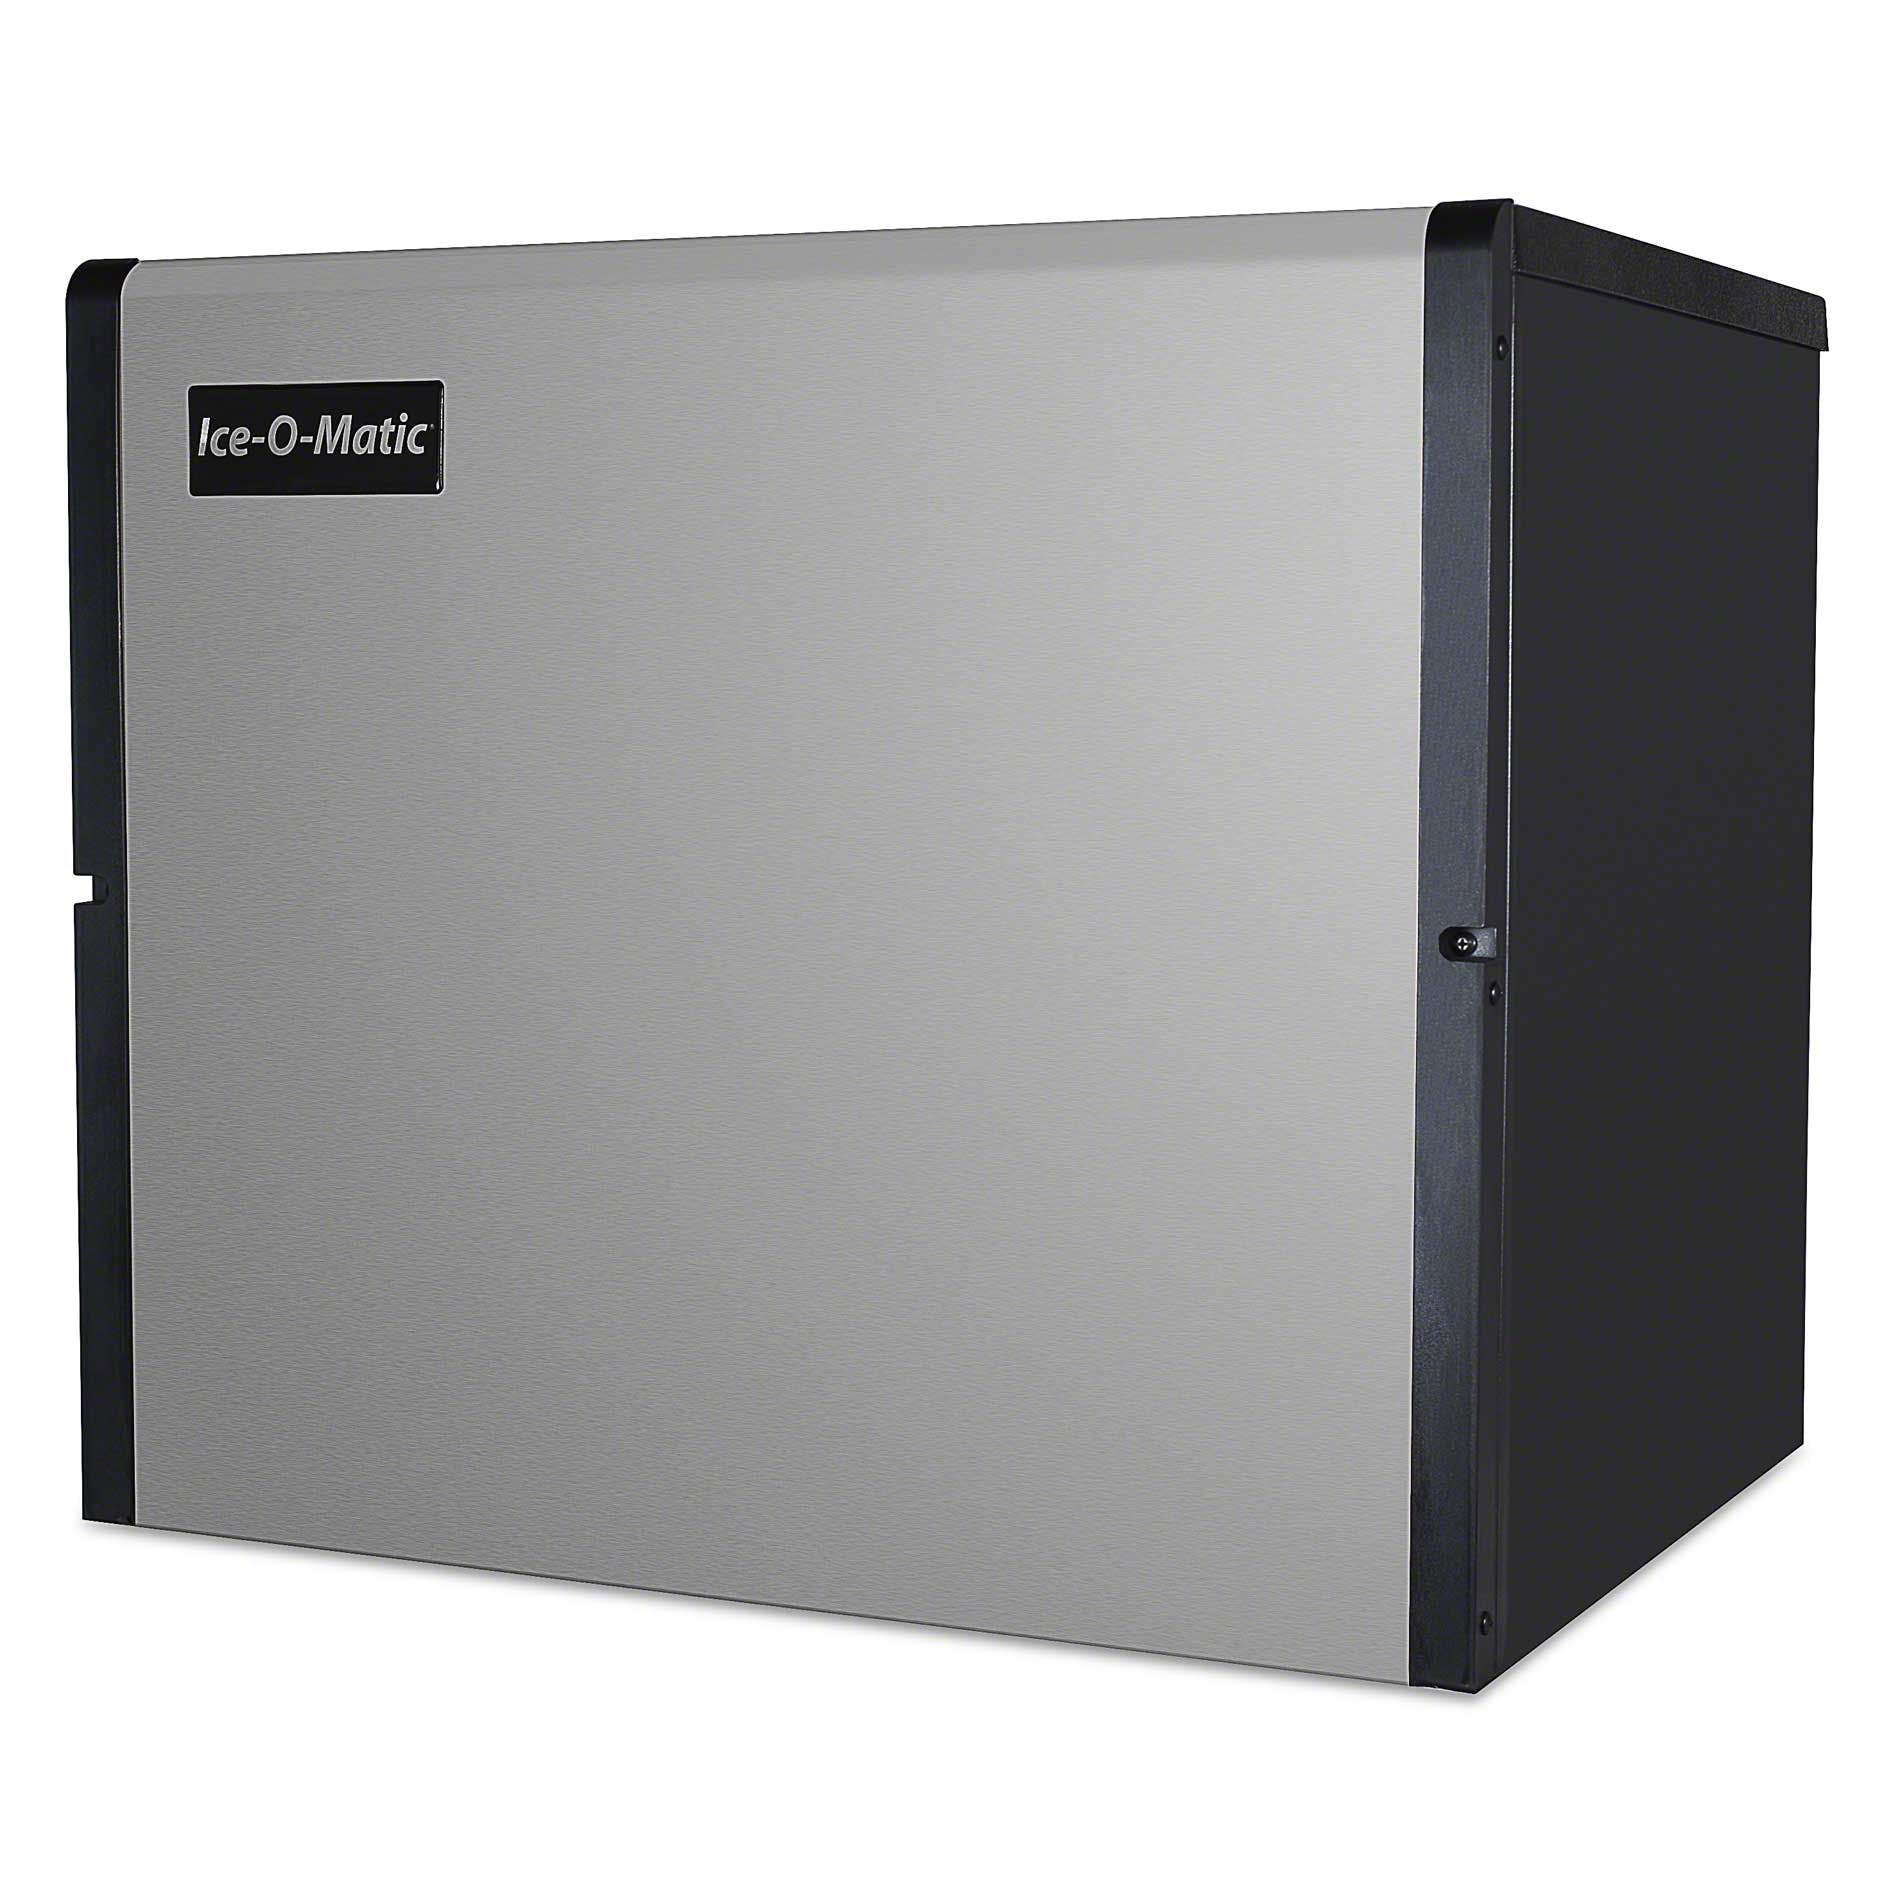 Ice-O-Matic - ICE0806FR 913 lb Full Cube Ice Machine - sold by Food Service Warehouse